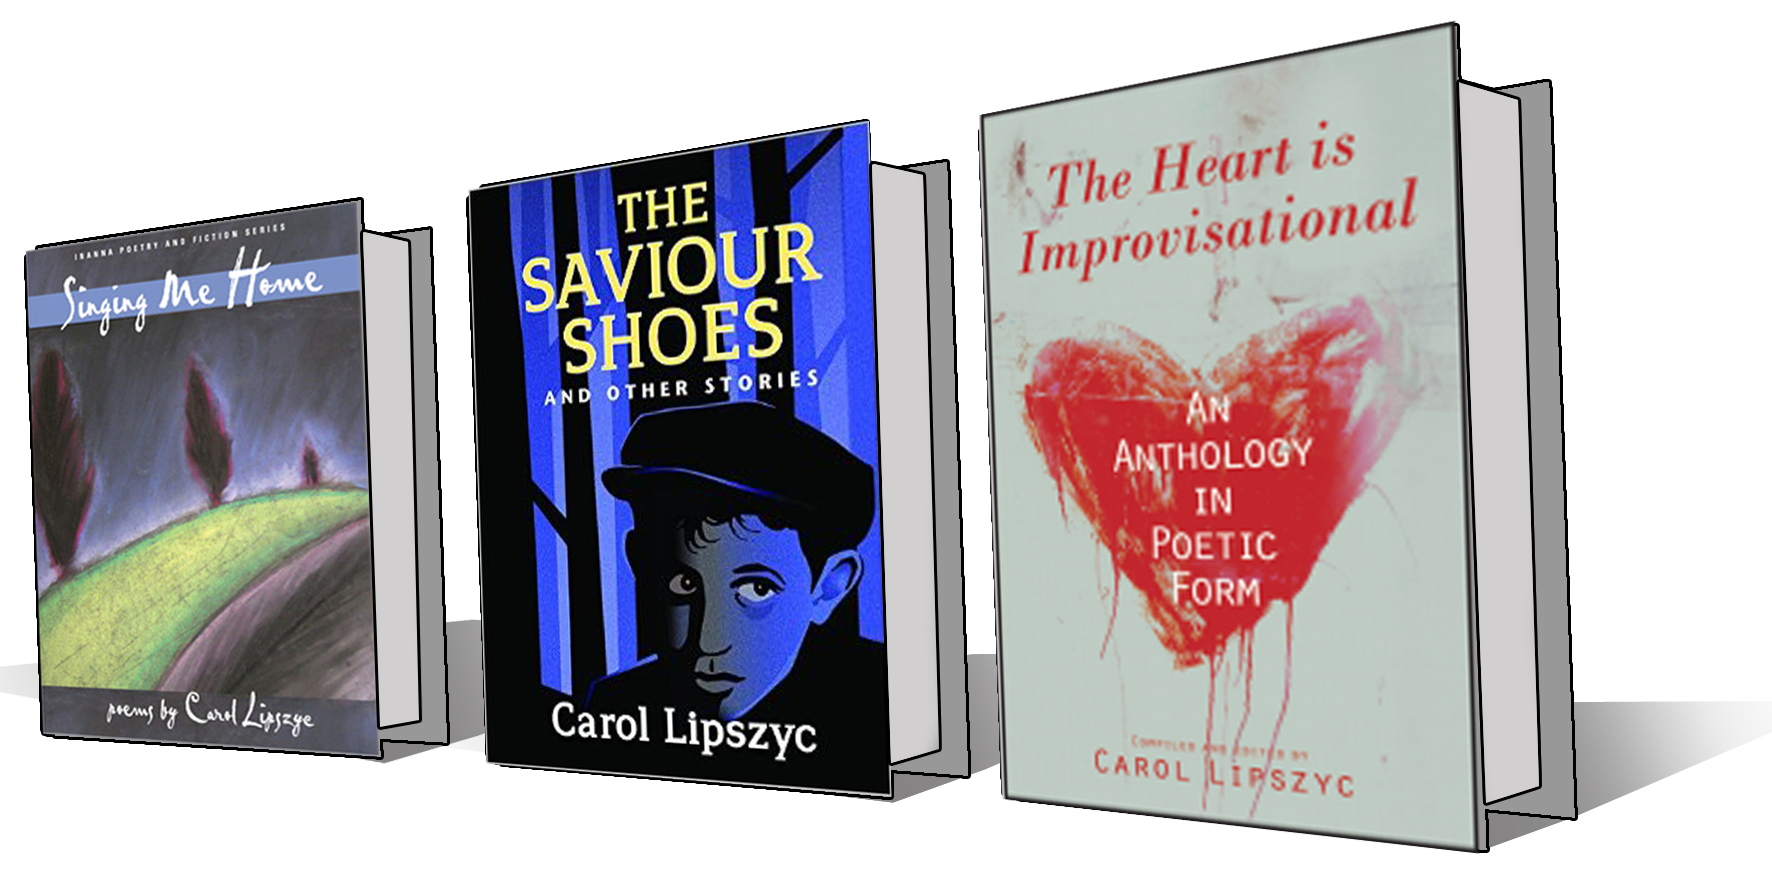 Images of the books written by Carol Lipszyc